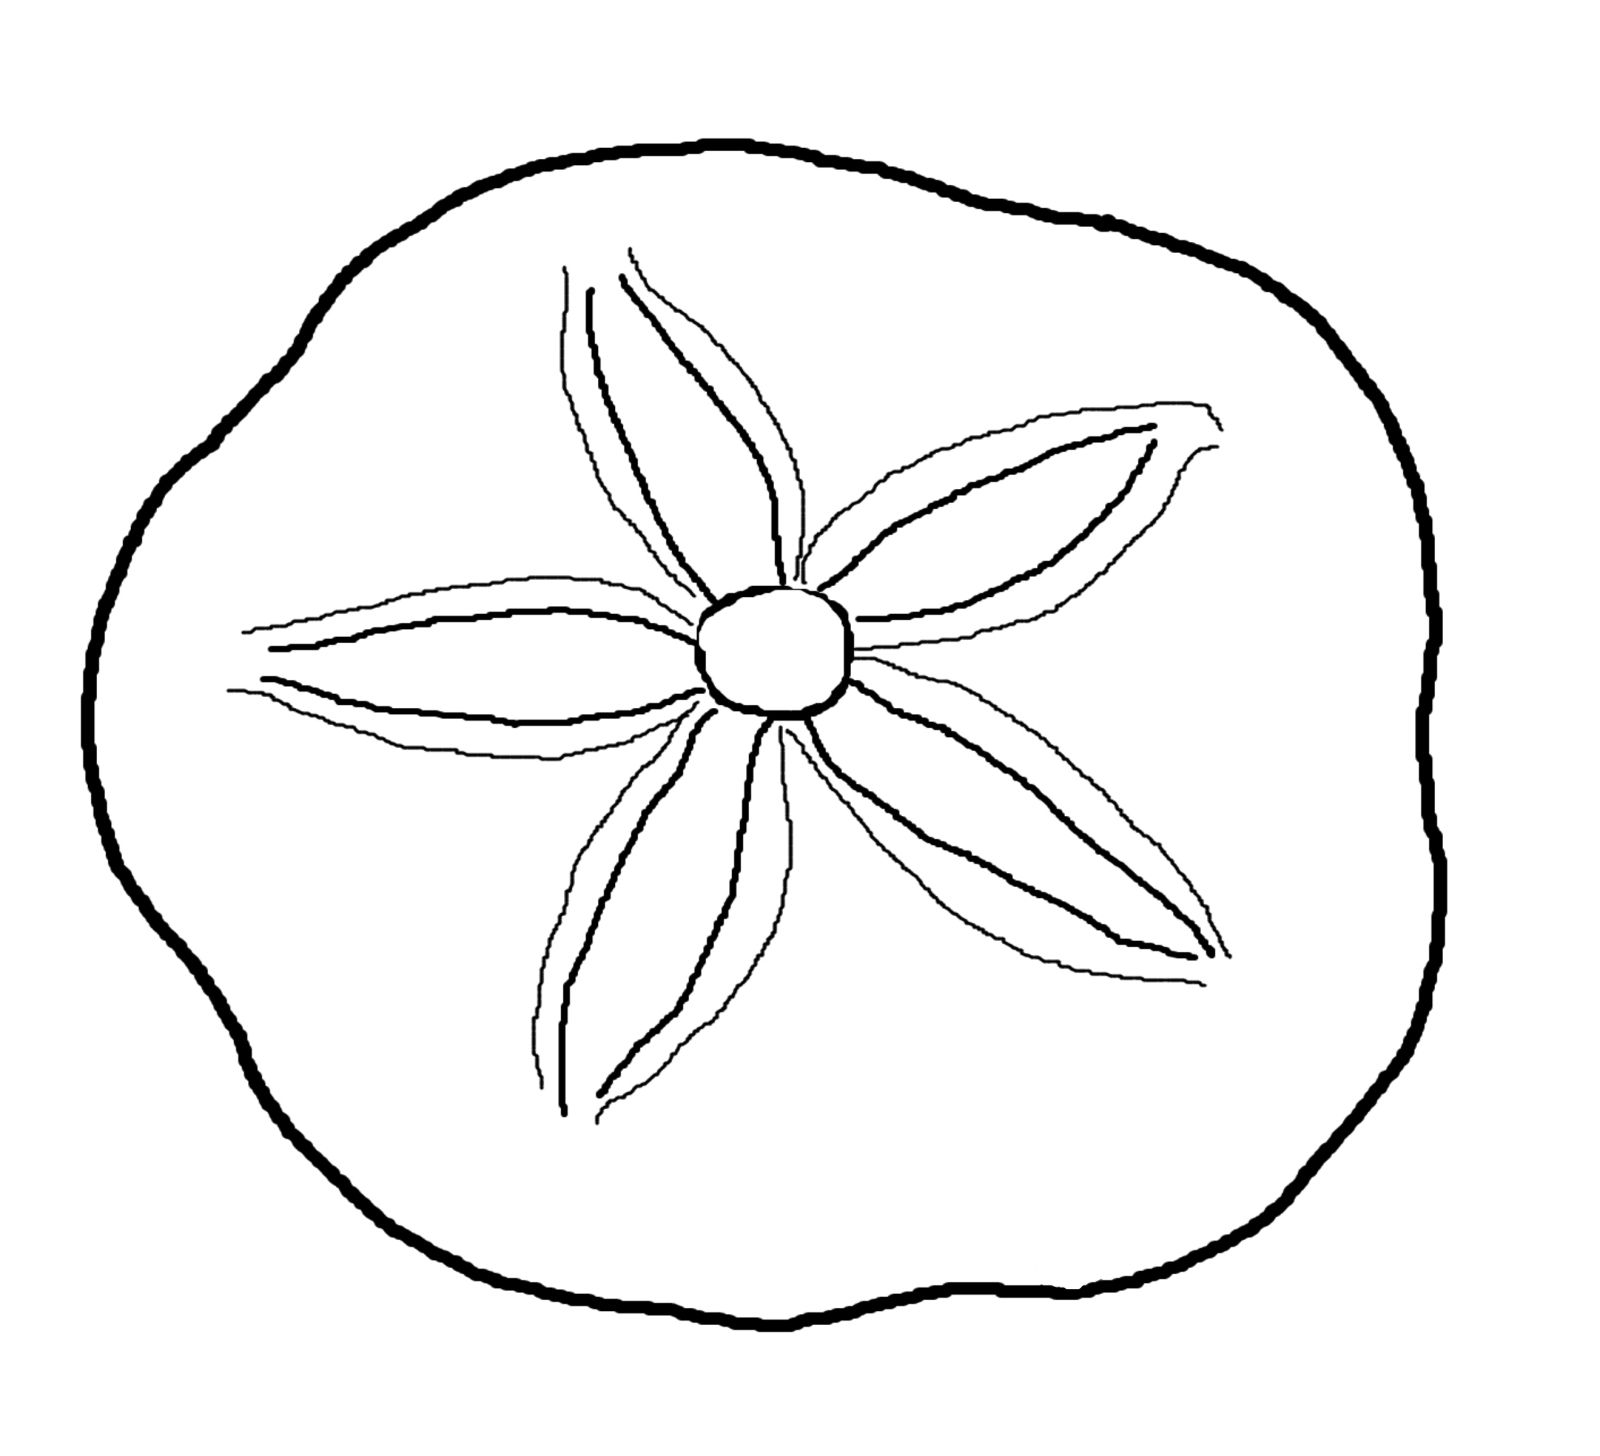 sea life clipart sand dollar.